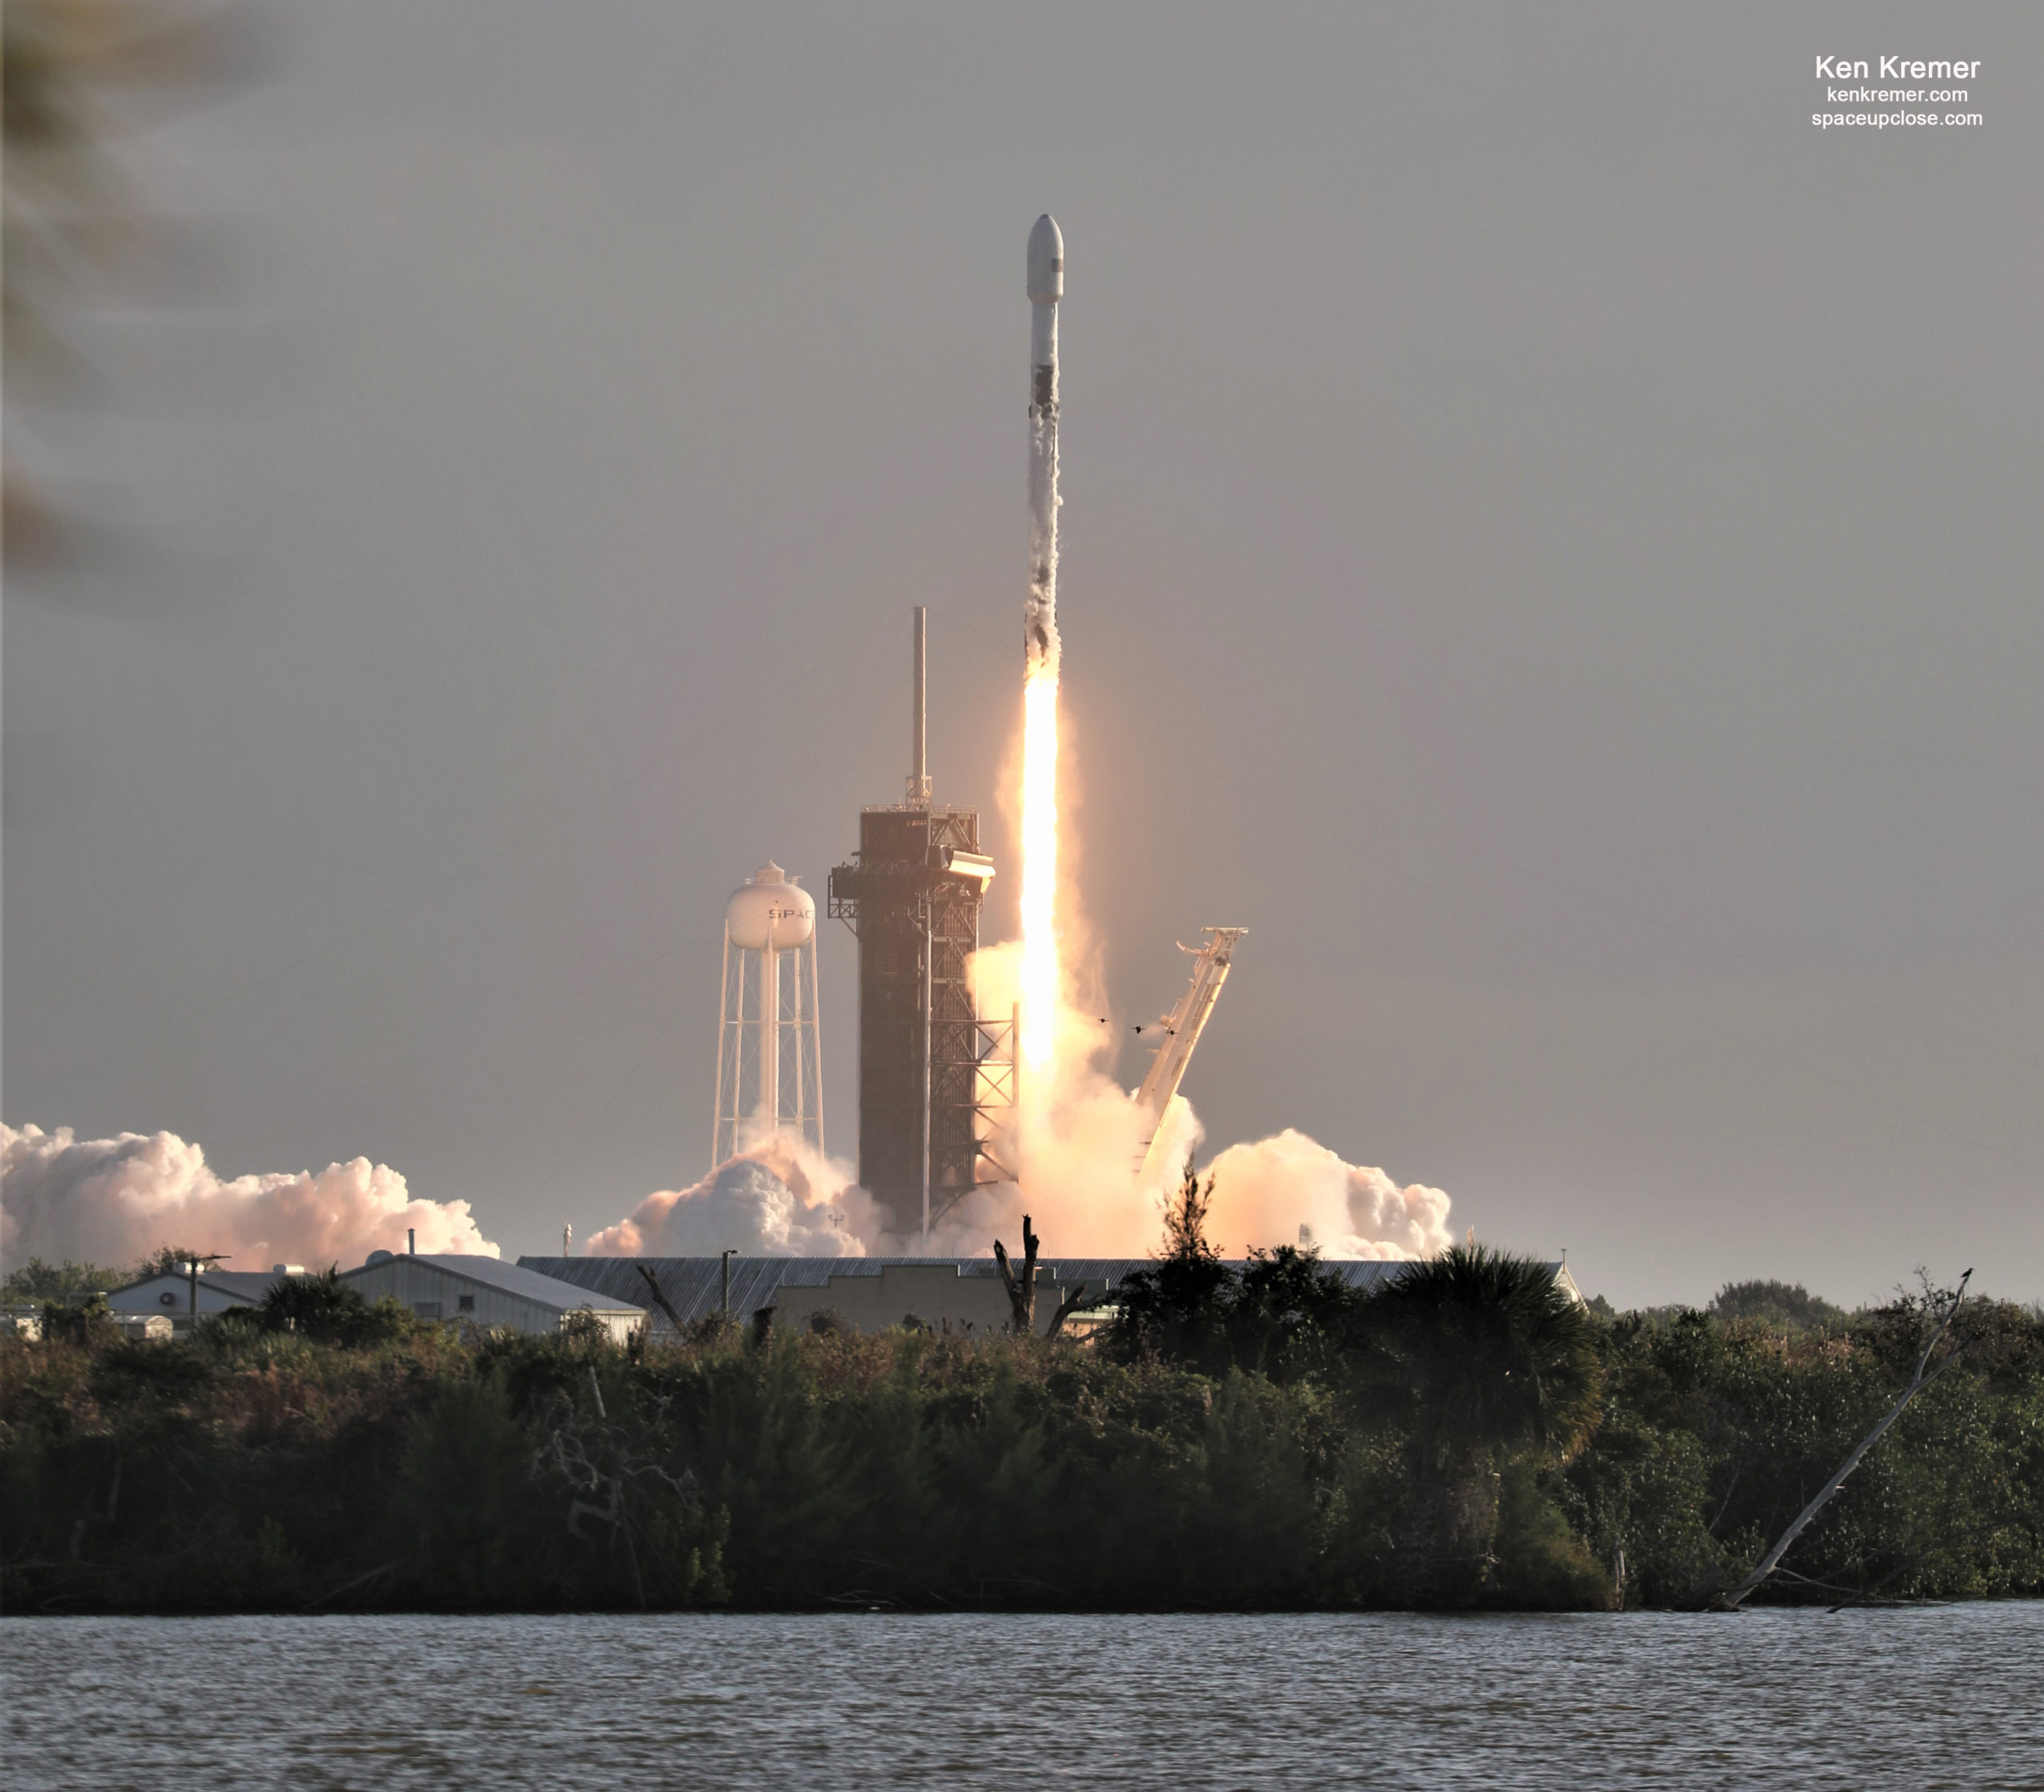 SpaceX Launches Next Batch Starlink Satellites, 1st of 2 This Week from Space Coast: Photos